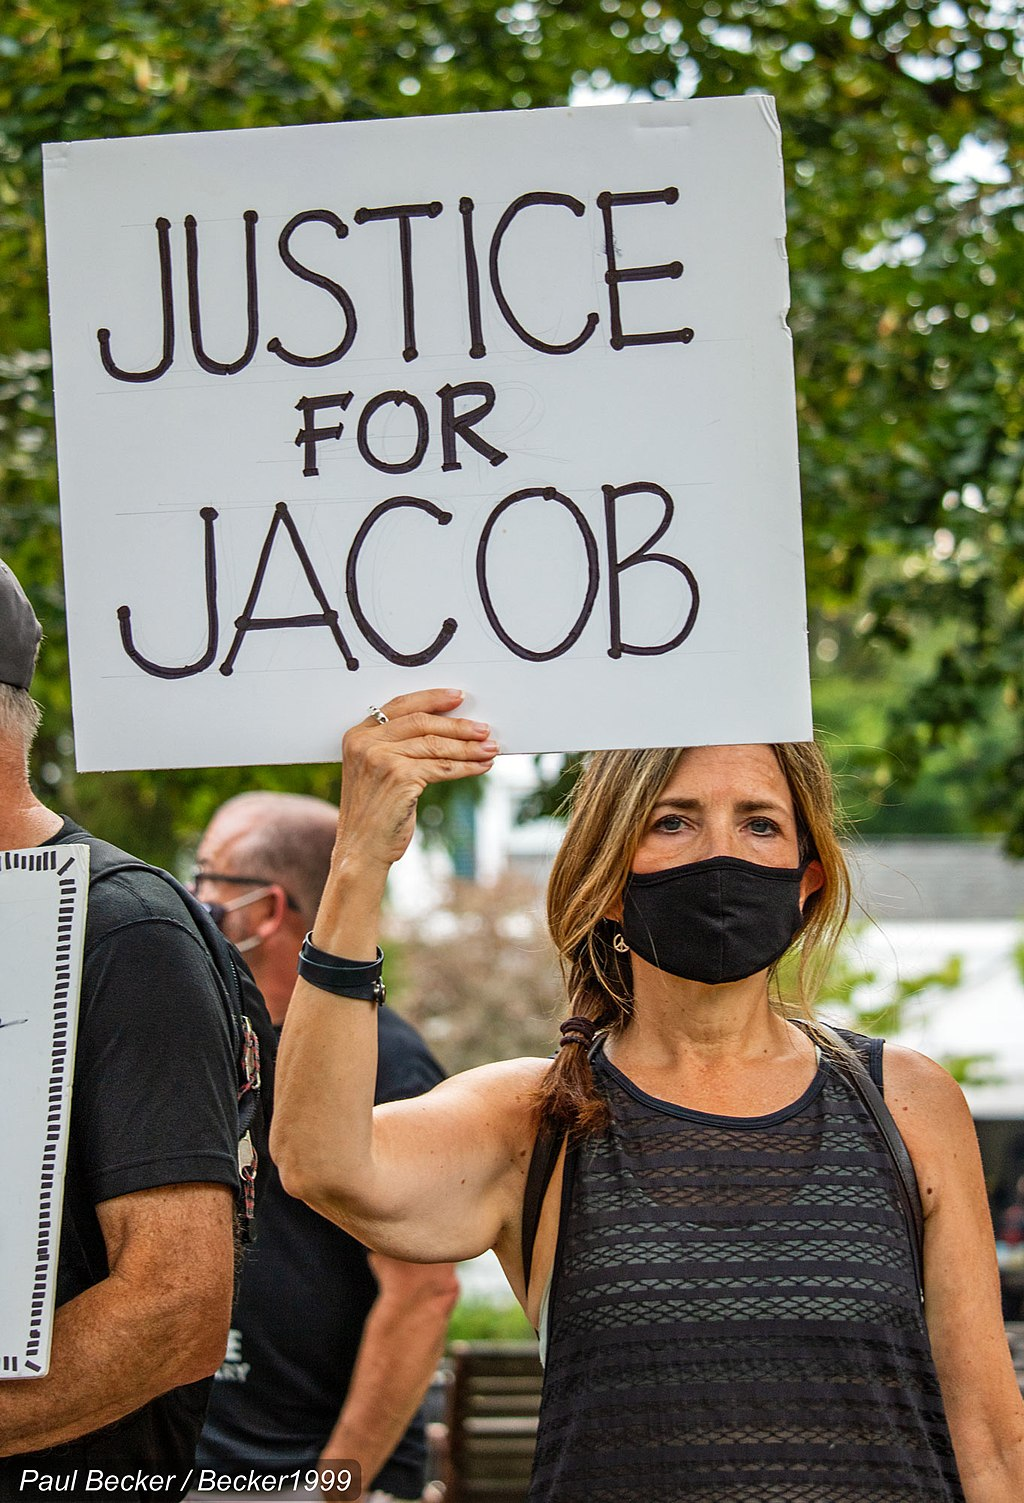 Justice for Jacob protest sign